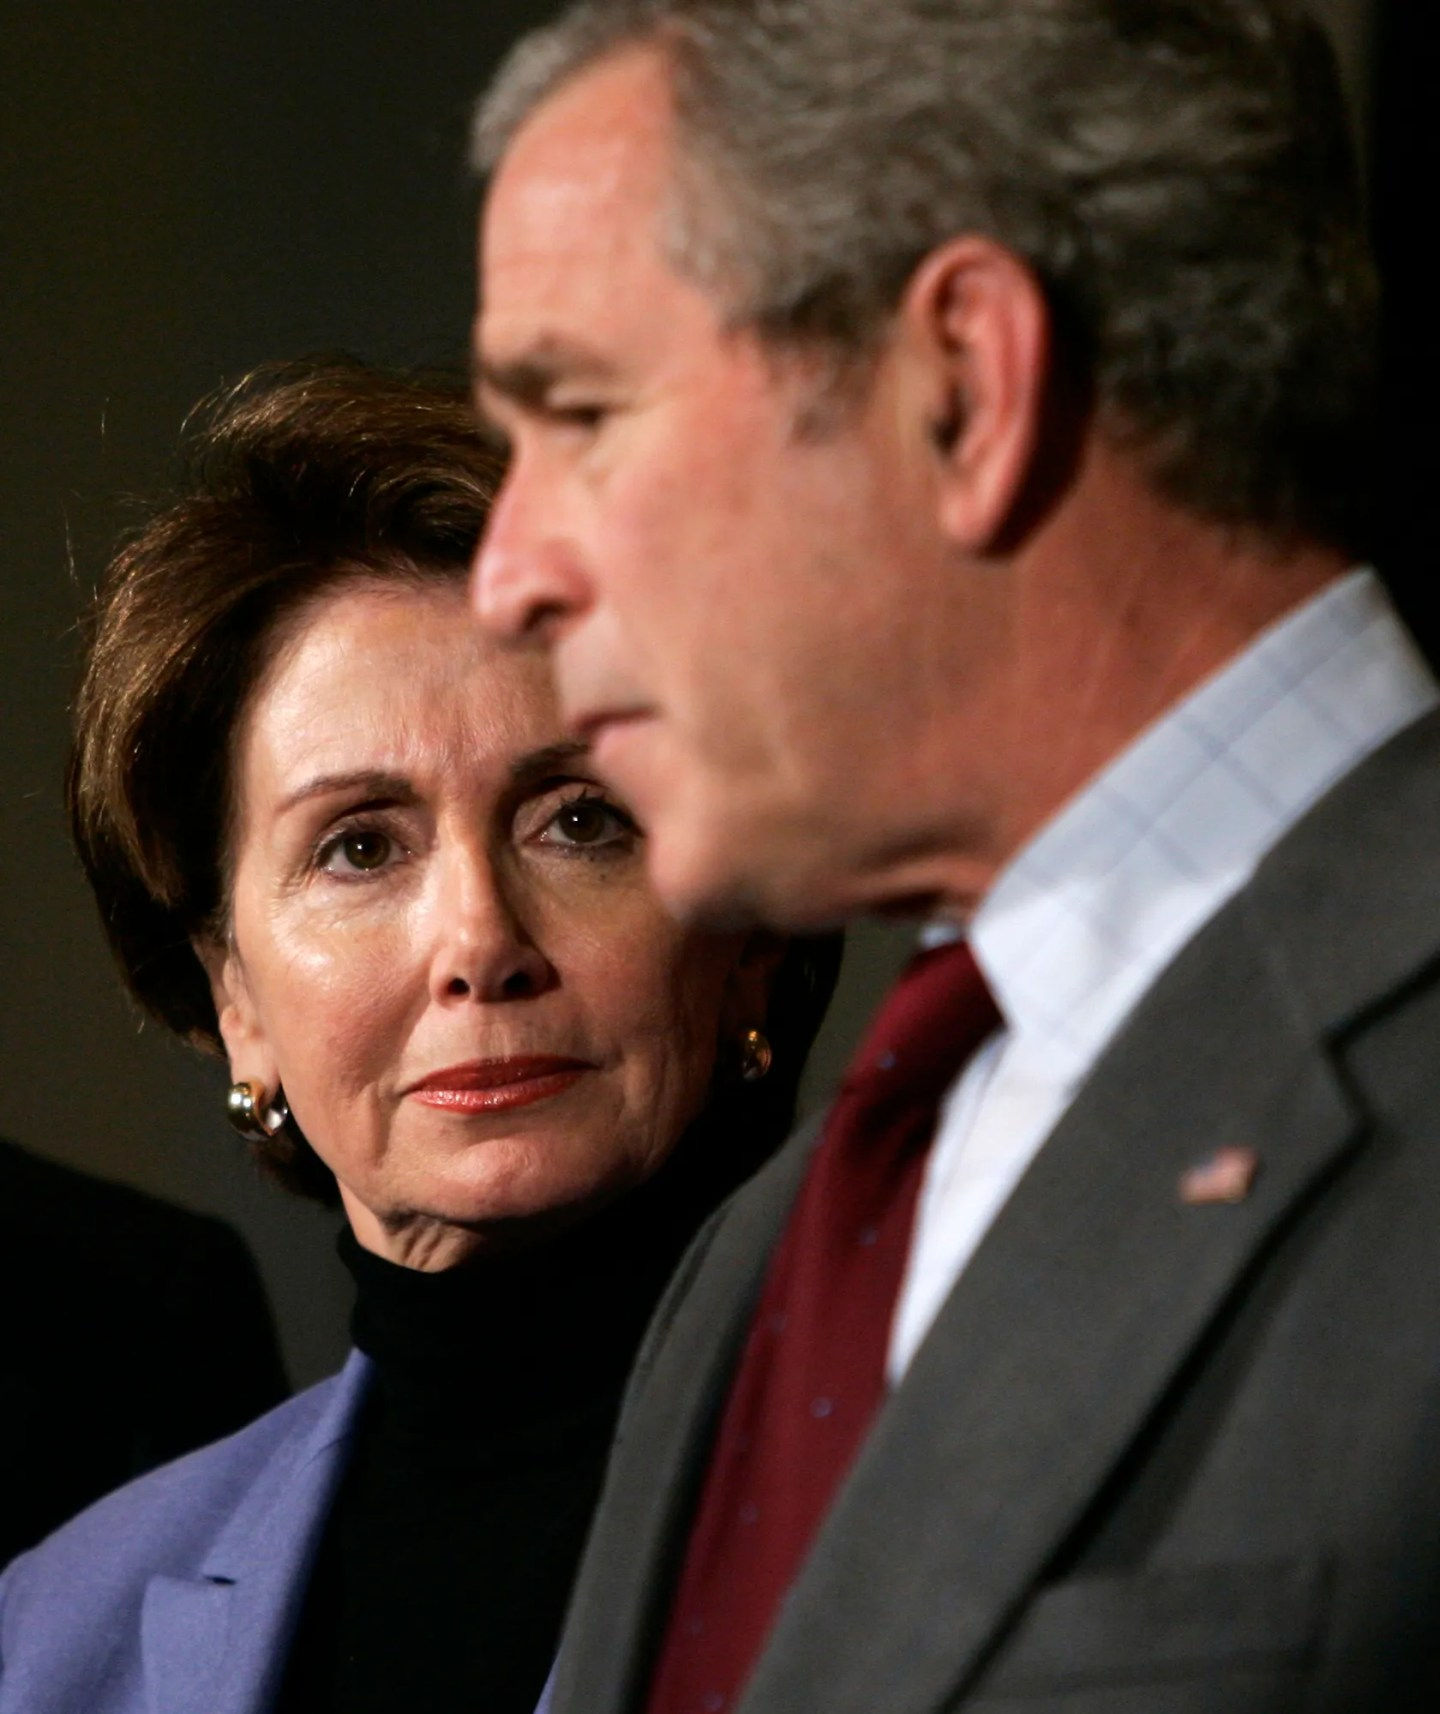 Speaker of the House Rep. Nancy Pelosi, D-Calif., left, looks on as President Bush speaks at the House Democratic Issues Conference on Feb. 3, 2007, in Williamsburg, Va.